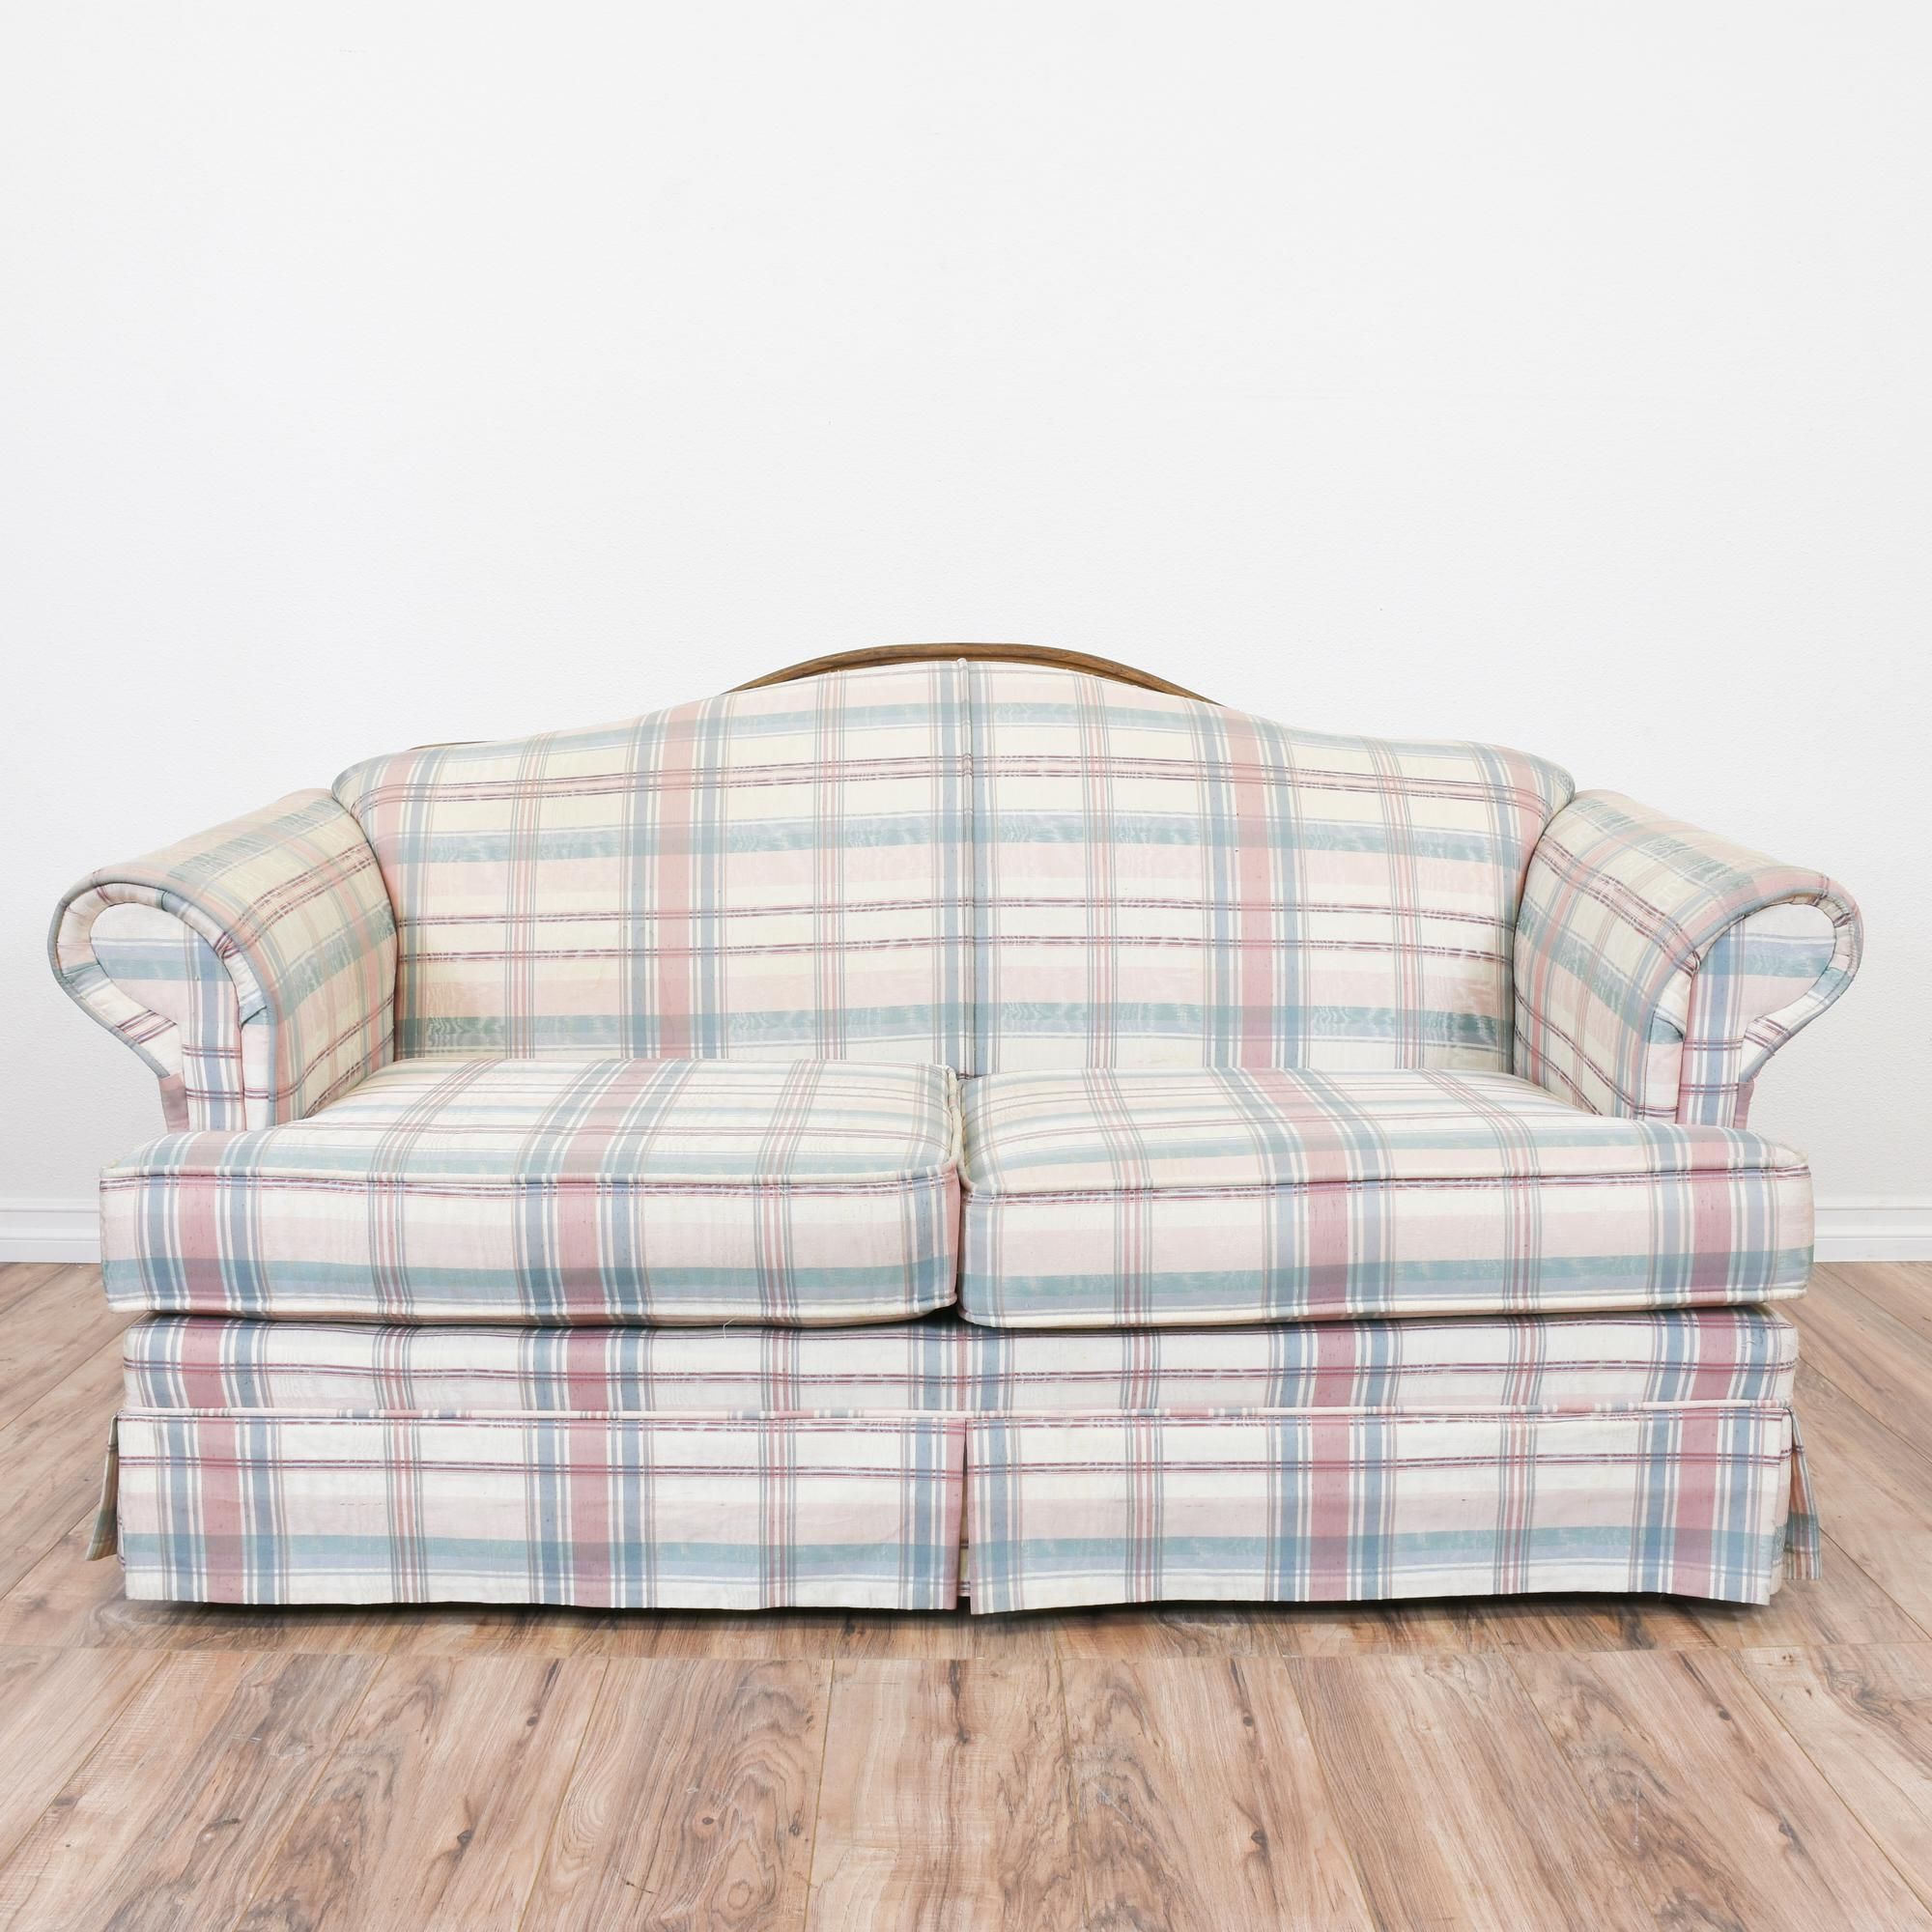 This Camelback Loveseat Is Upholstered In A Durable Off White Plaid Fabric  With Light Blue And